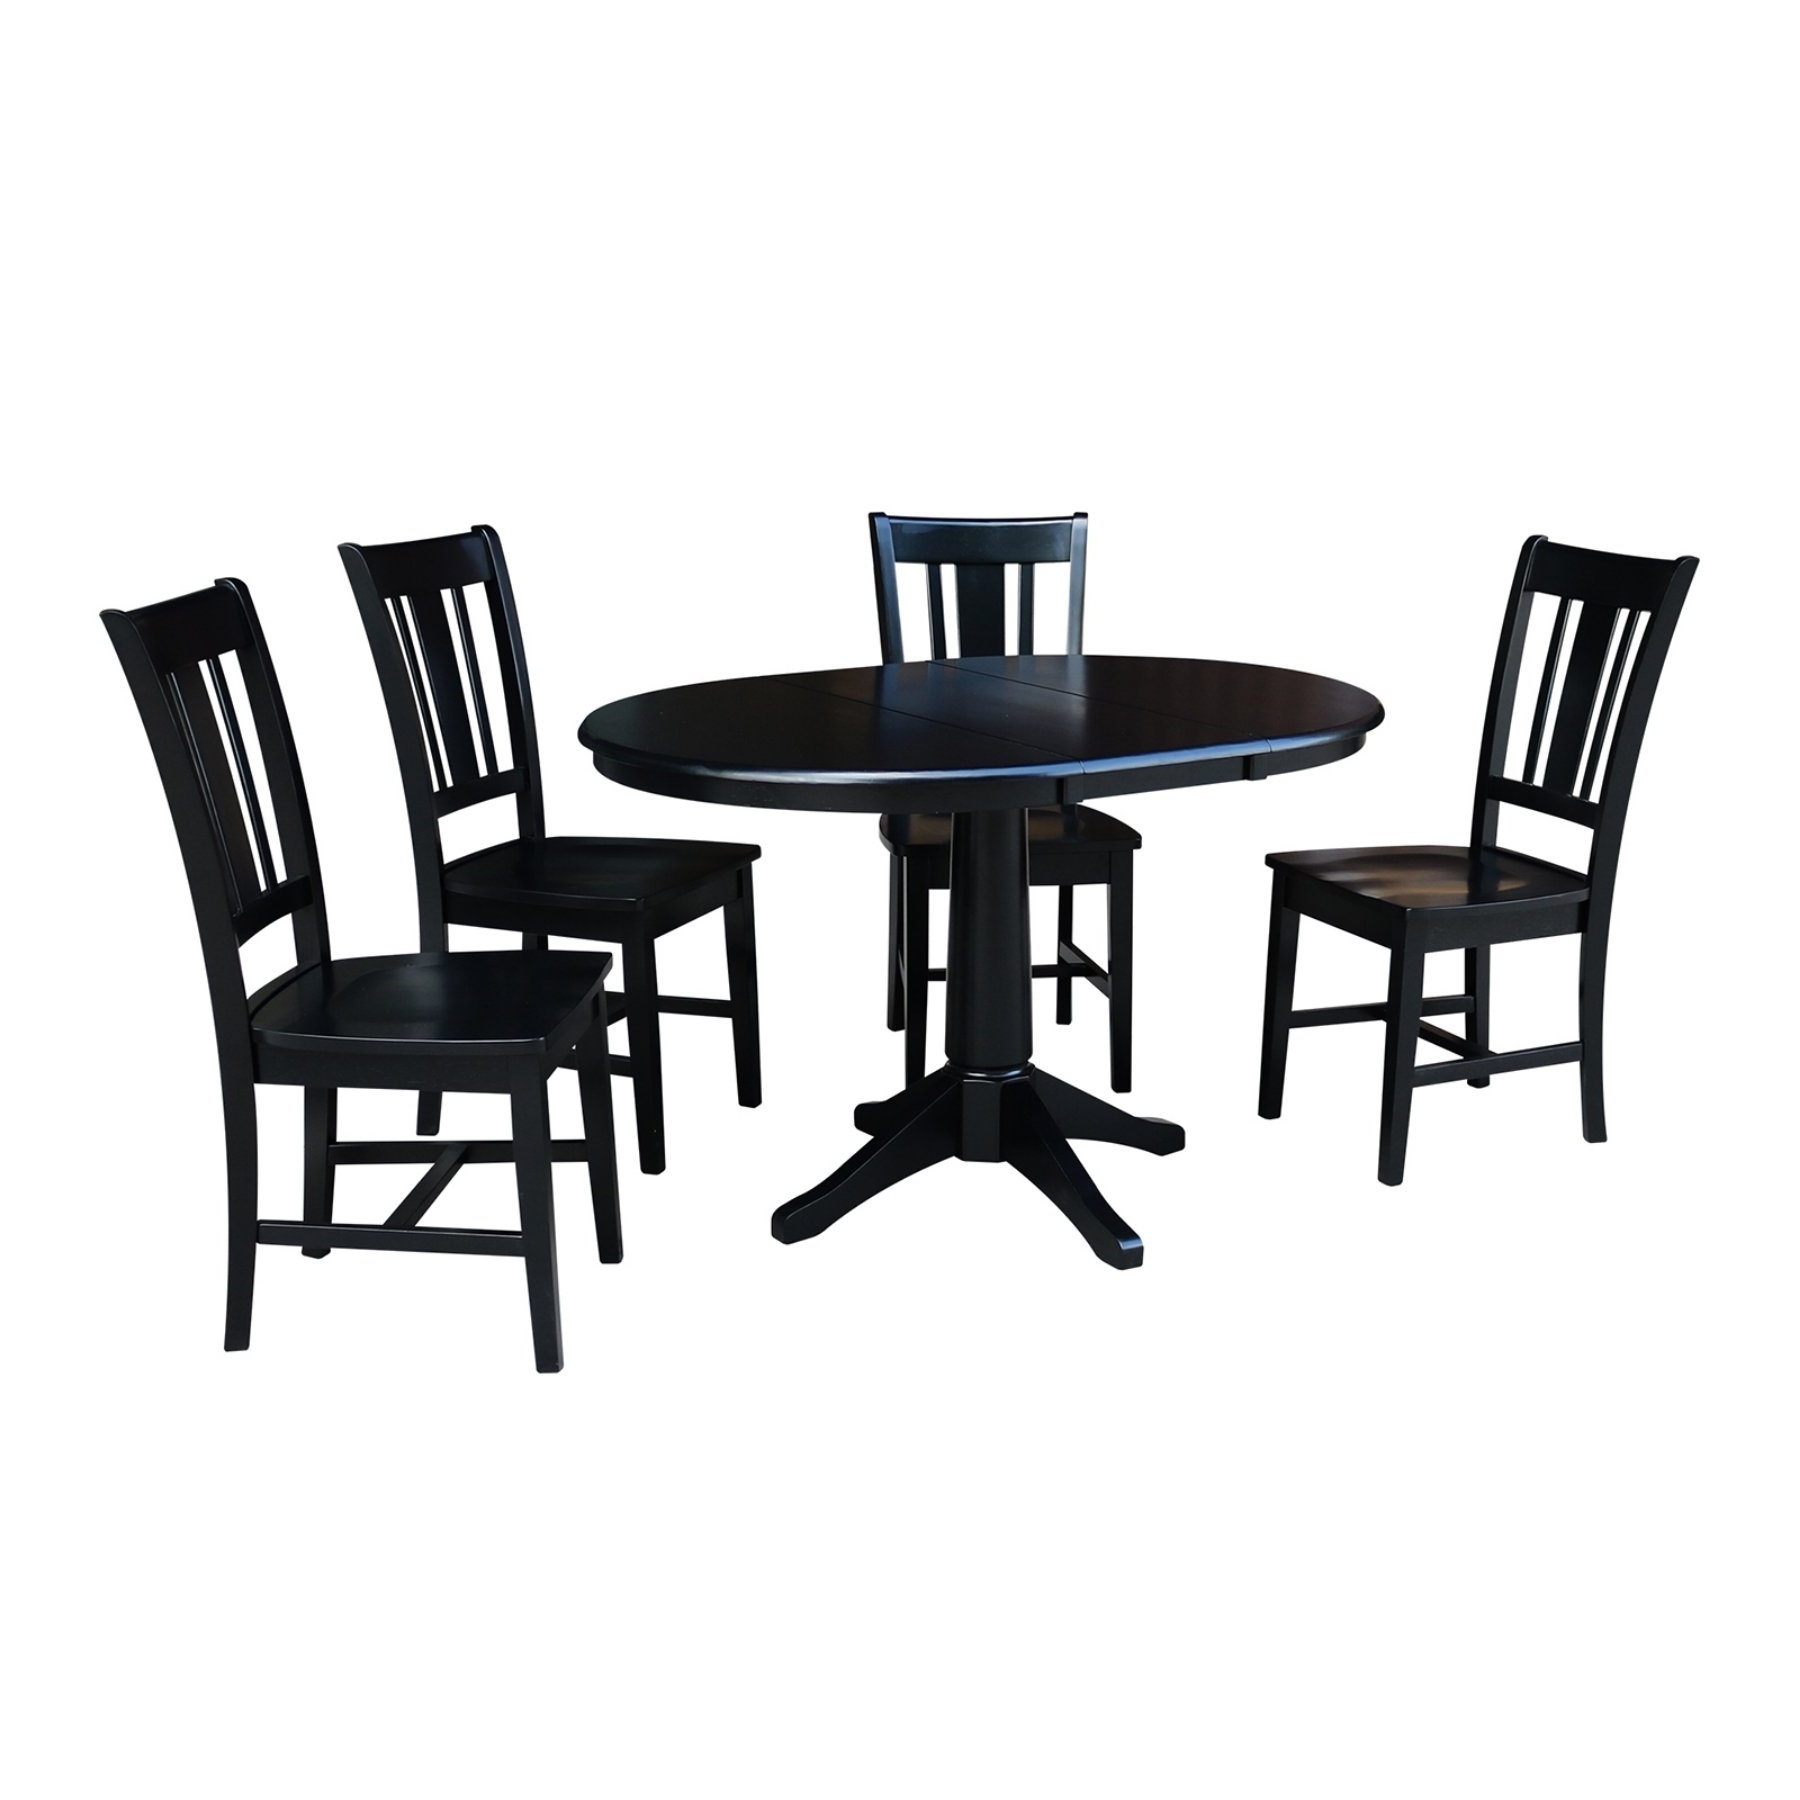 Well Liked Craftsman 5 Piece Round Dining Sets With Side Chairs Intended For International Concepts 5 Piece Dining Table Set With Extension Leaf (View 25 of 25)